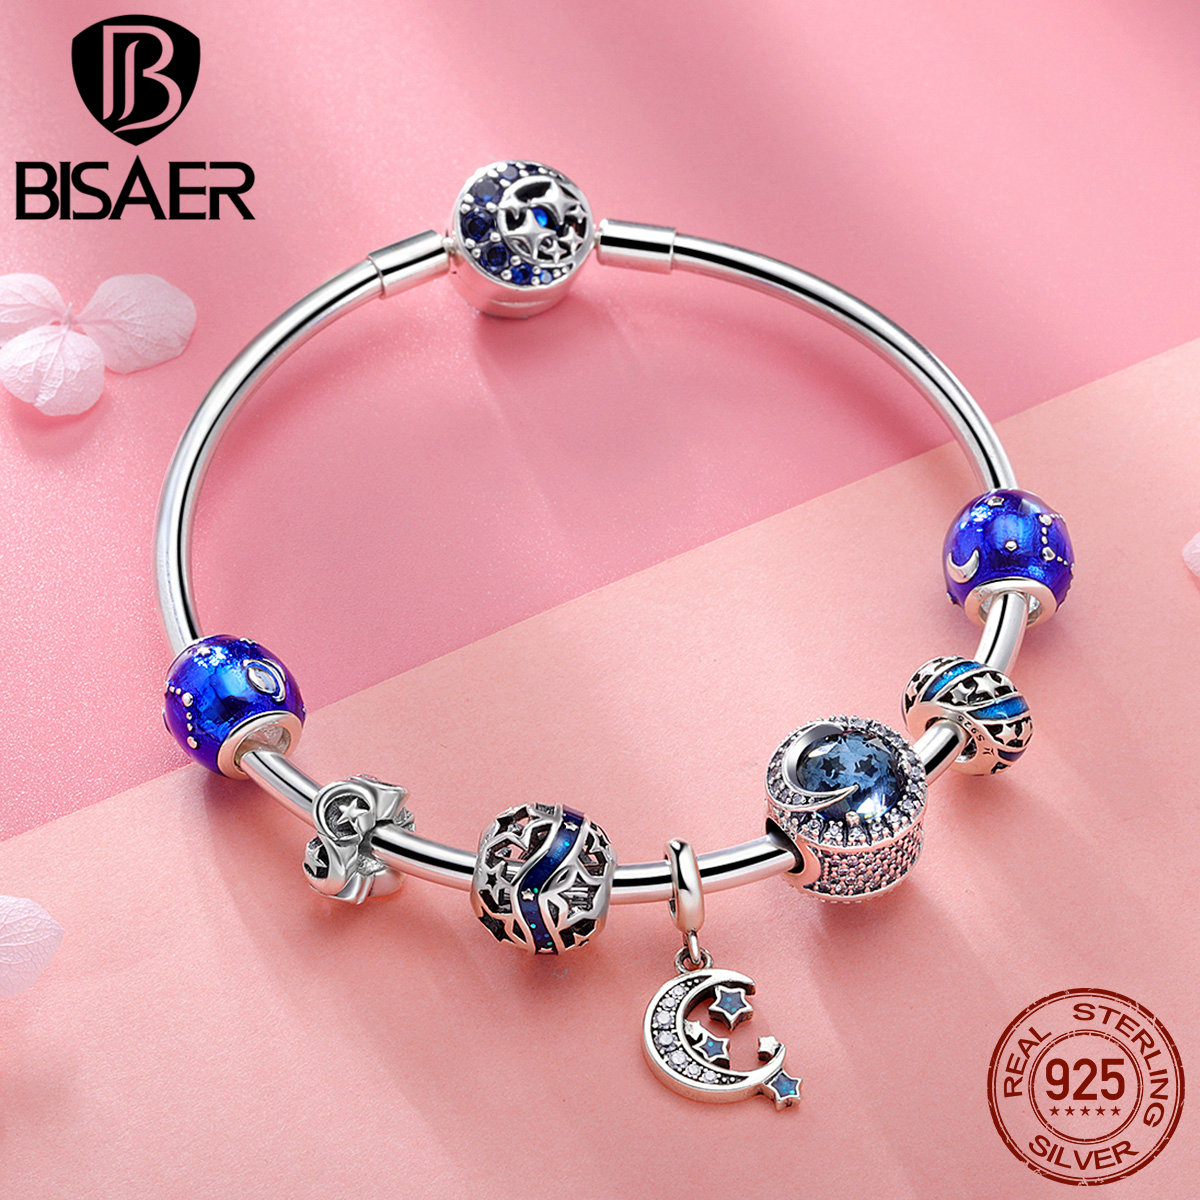 BISAER Genuine 925 Sterling Silver Shining Star Blue Moon Night Collection Brand Charm Bracelet for Women Silver Jewelry HSB801